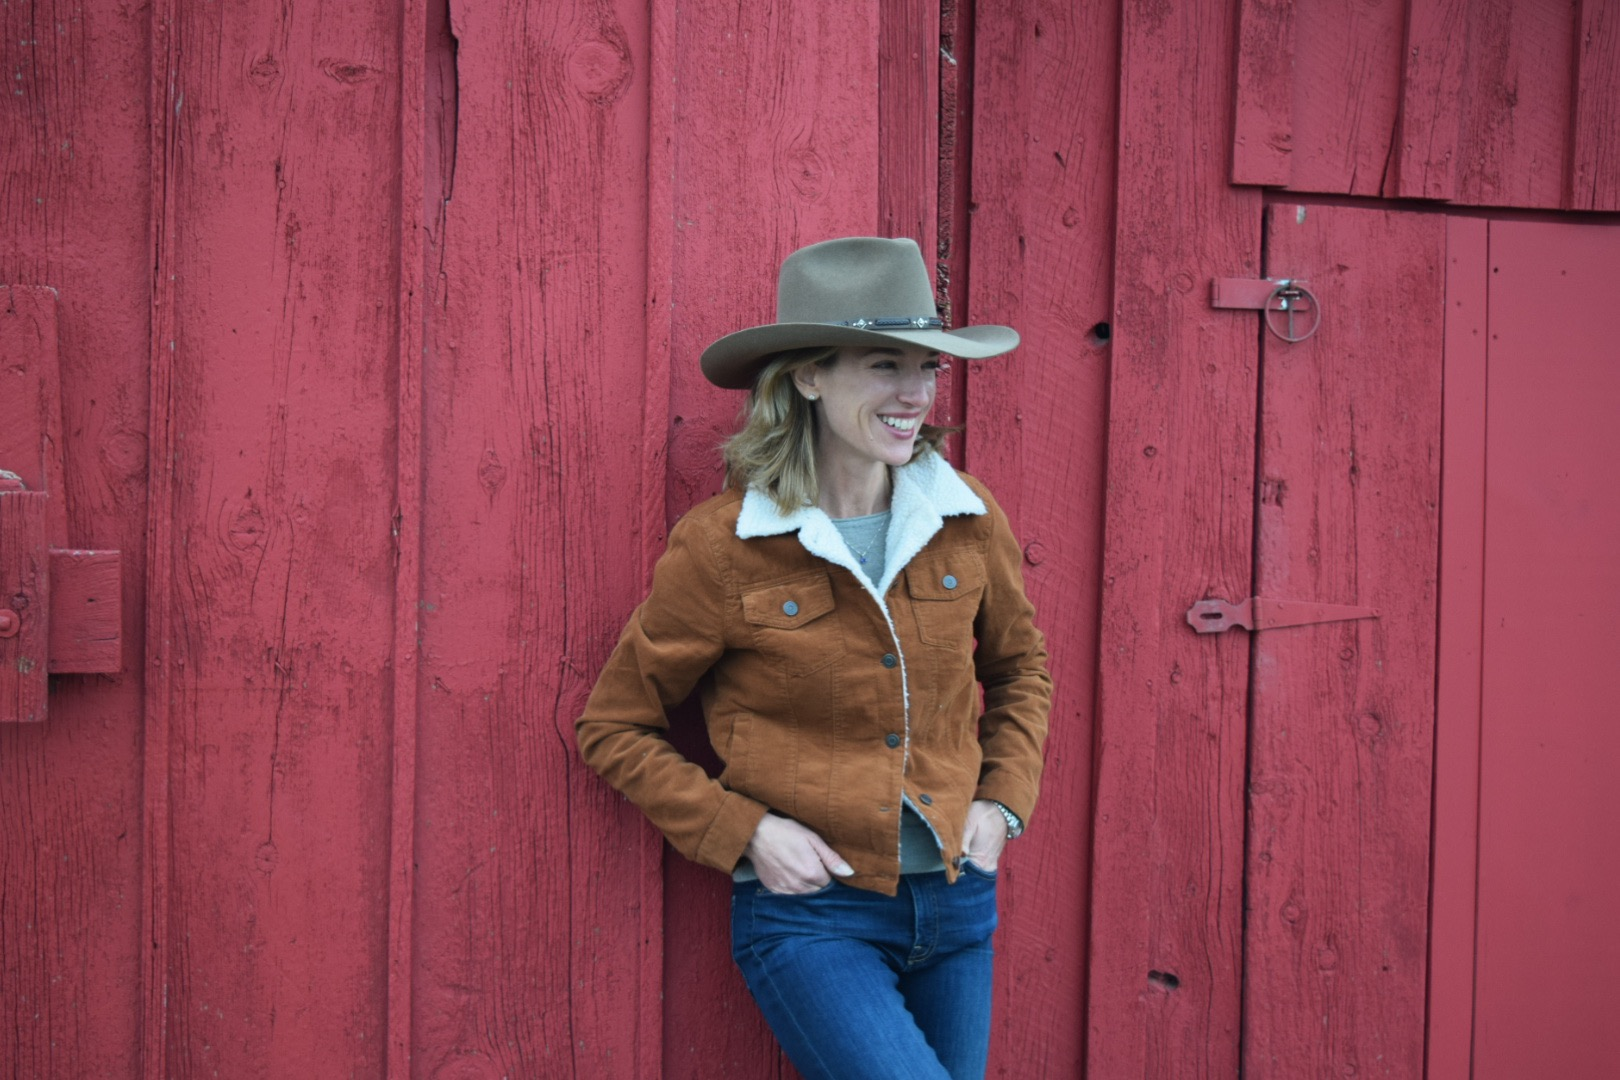 Christine - Founder of Shortgrass Prairie beef. Having travelled the world, the ranch is still her most favorite place.